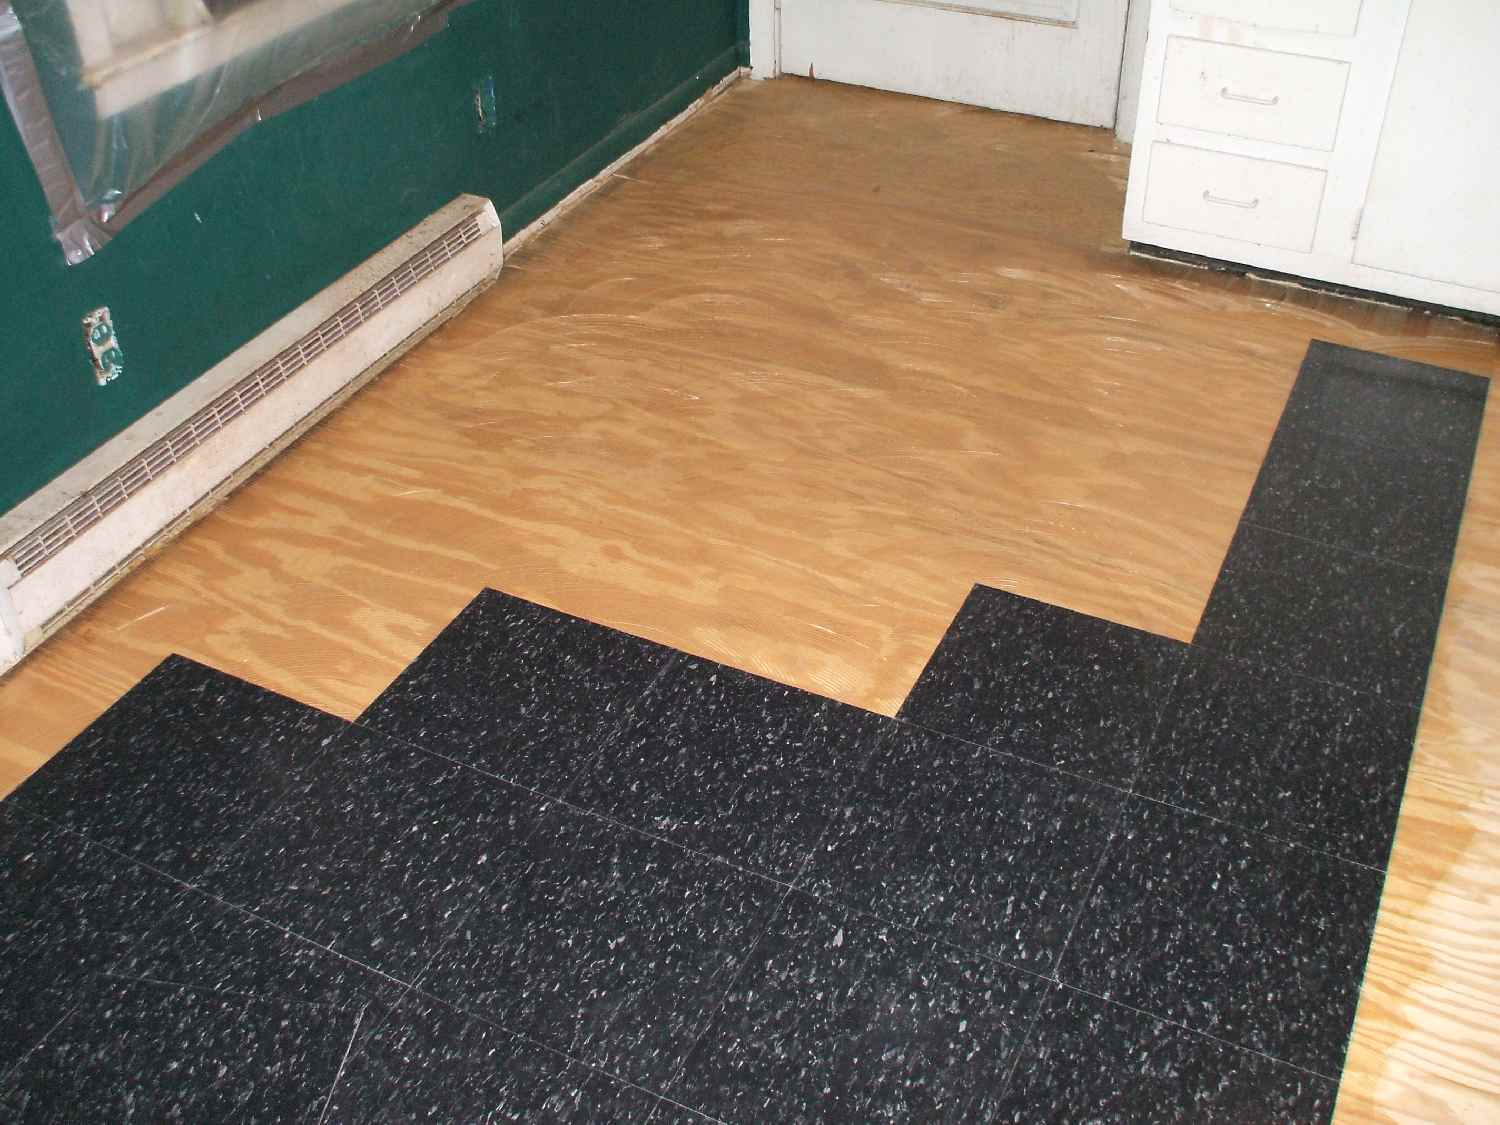 How To Install Commercial Grade Resilient Tile 6 Steps